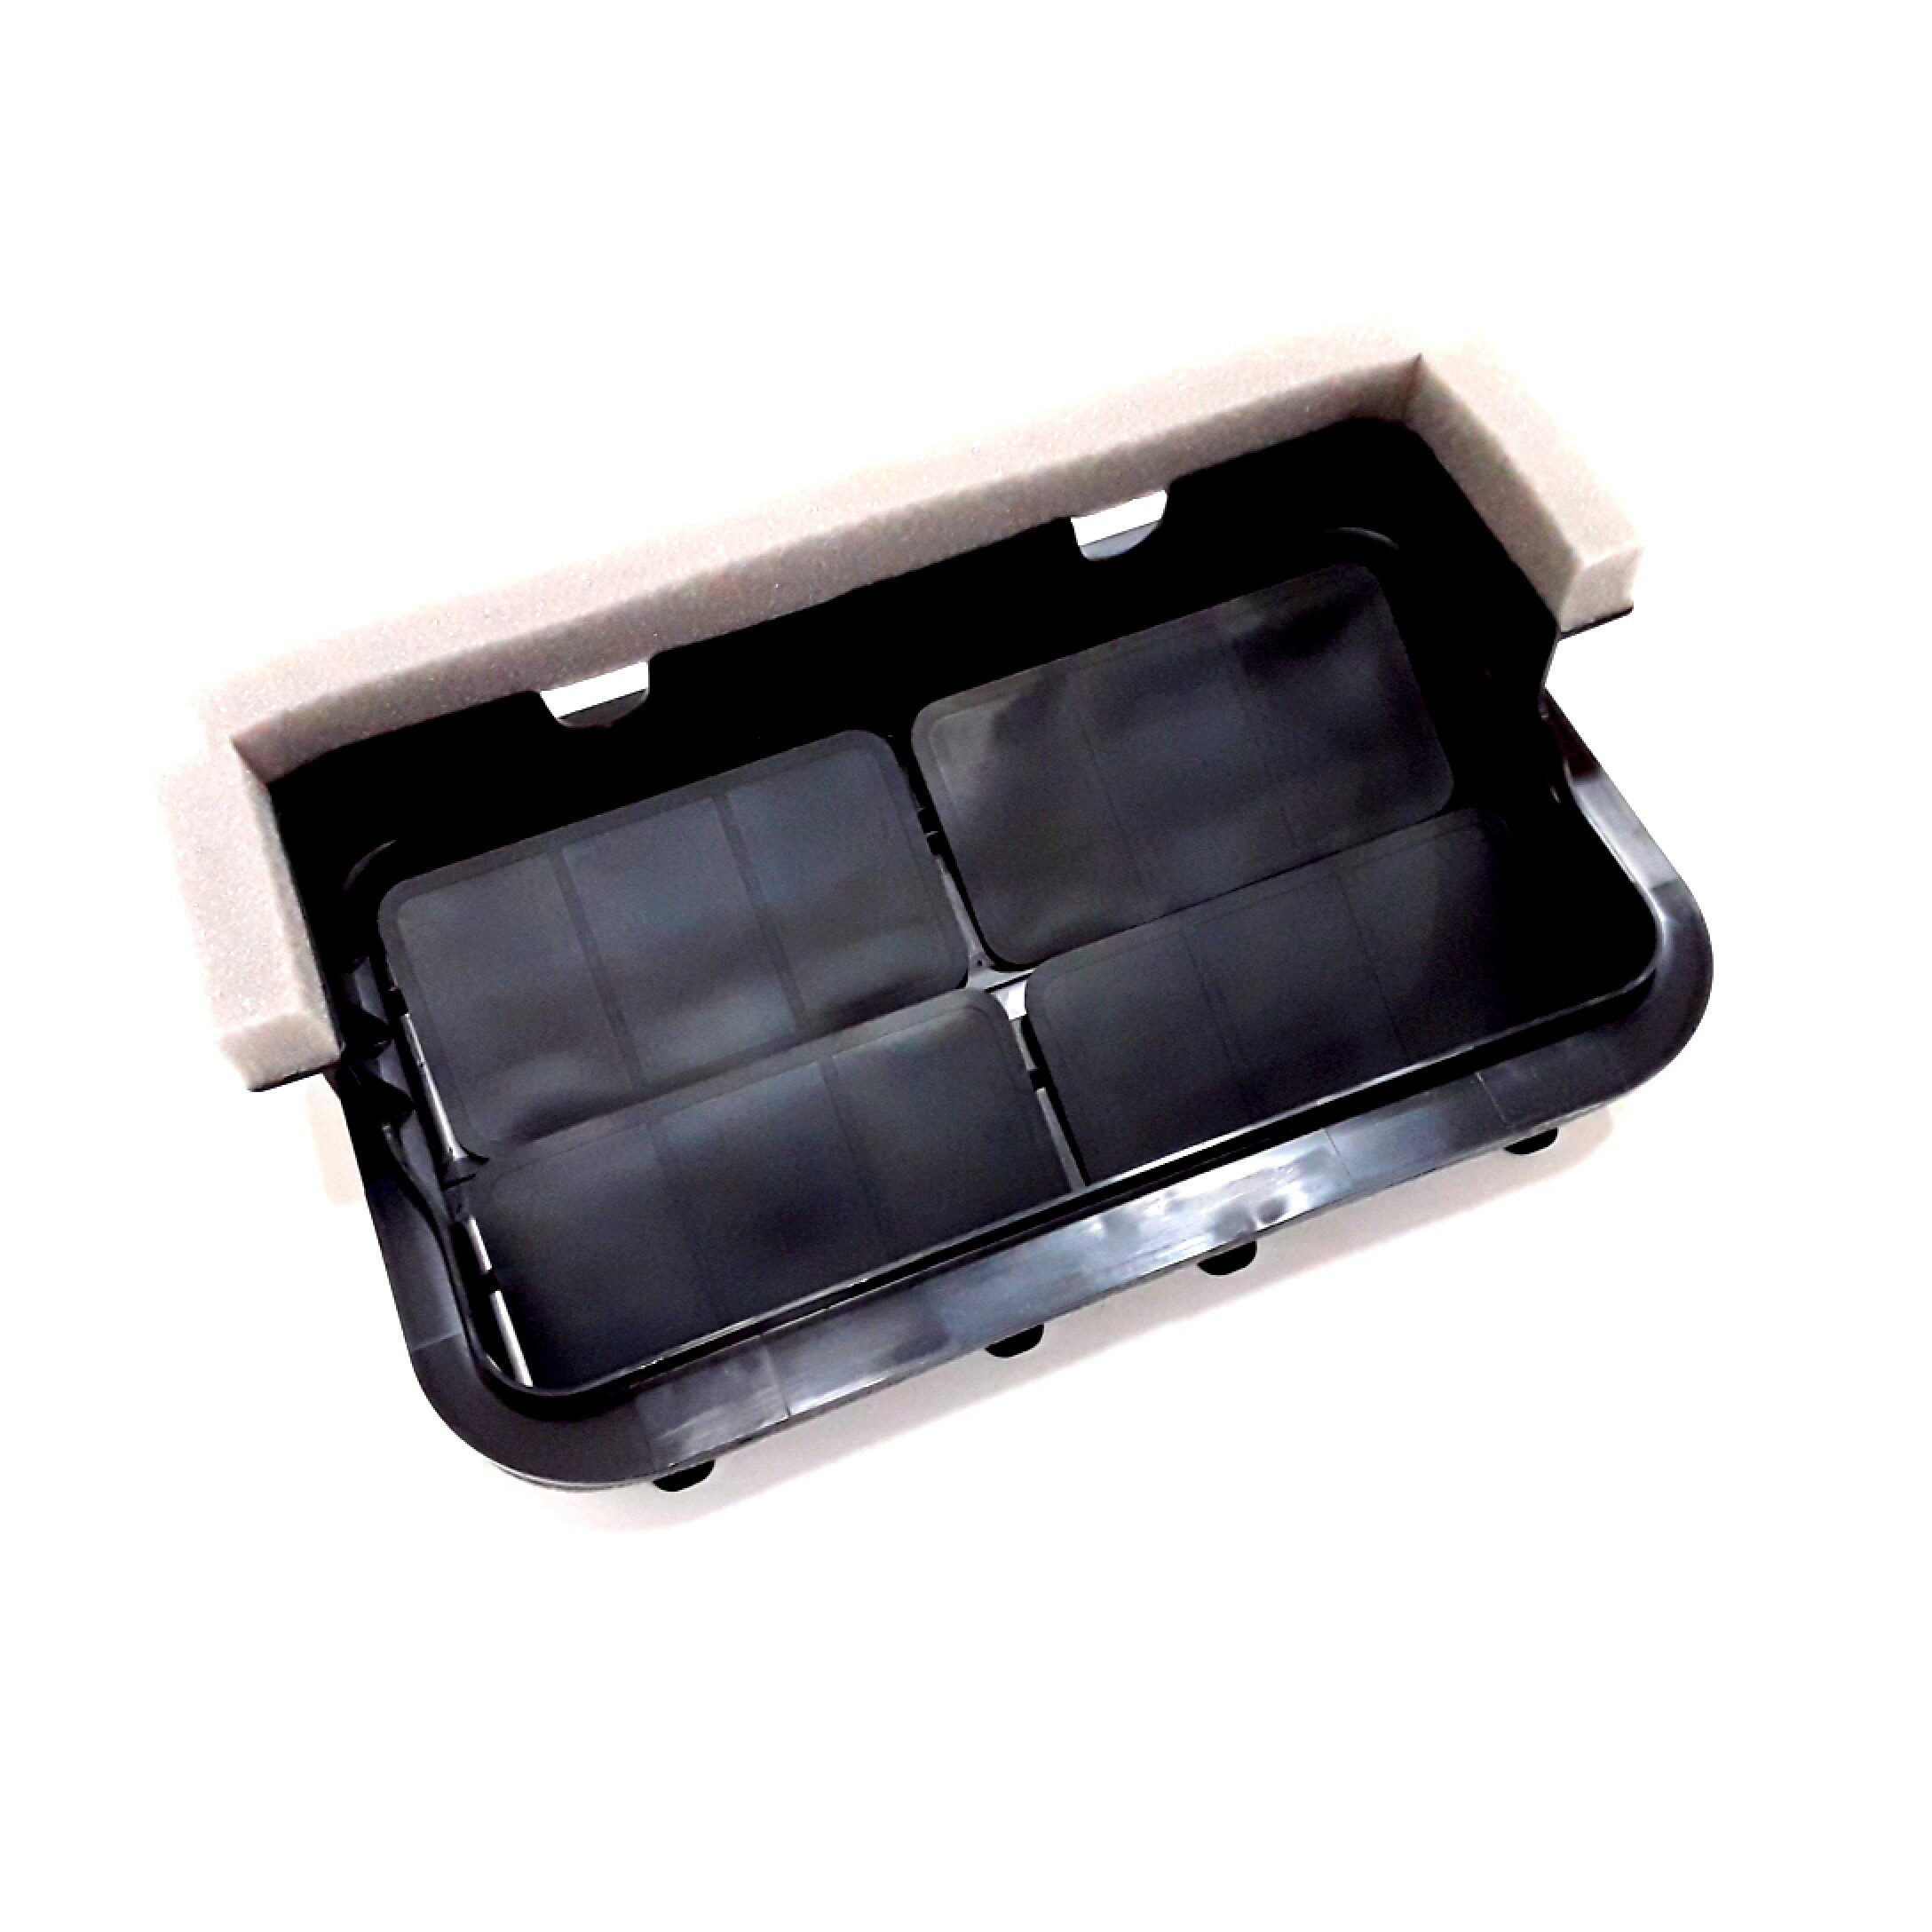 2016 Subaru Legacy Grille Air Vent Assembly A System